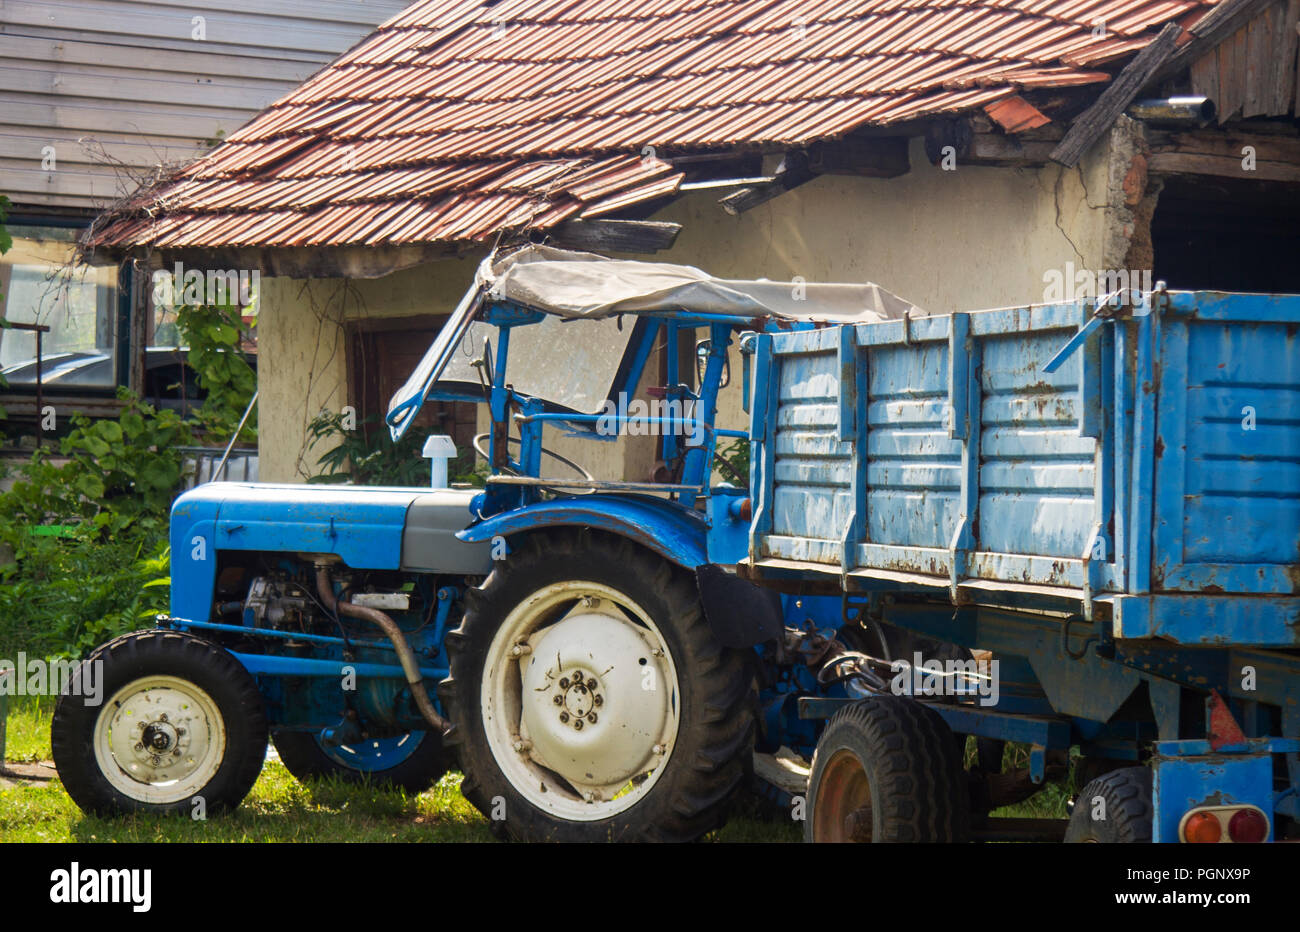 Blue tractor parking at the courtyard of the old, aged house. Ready to work. Stock Photo